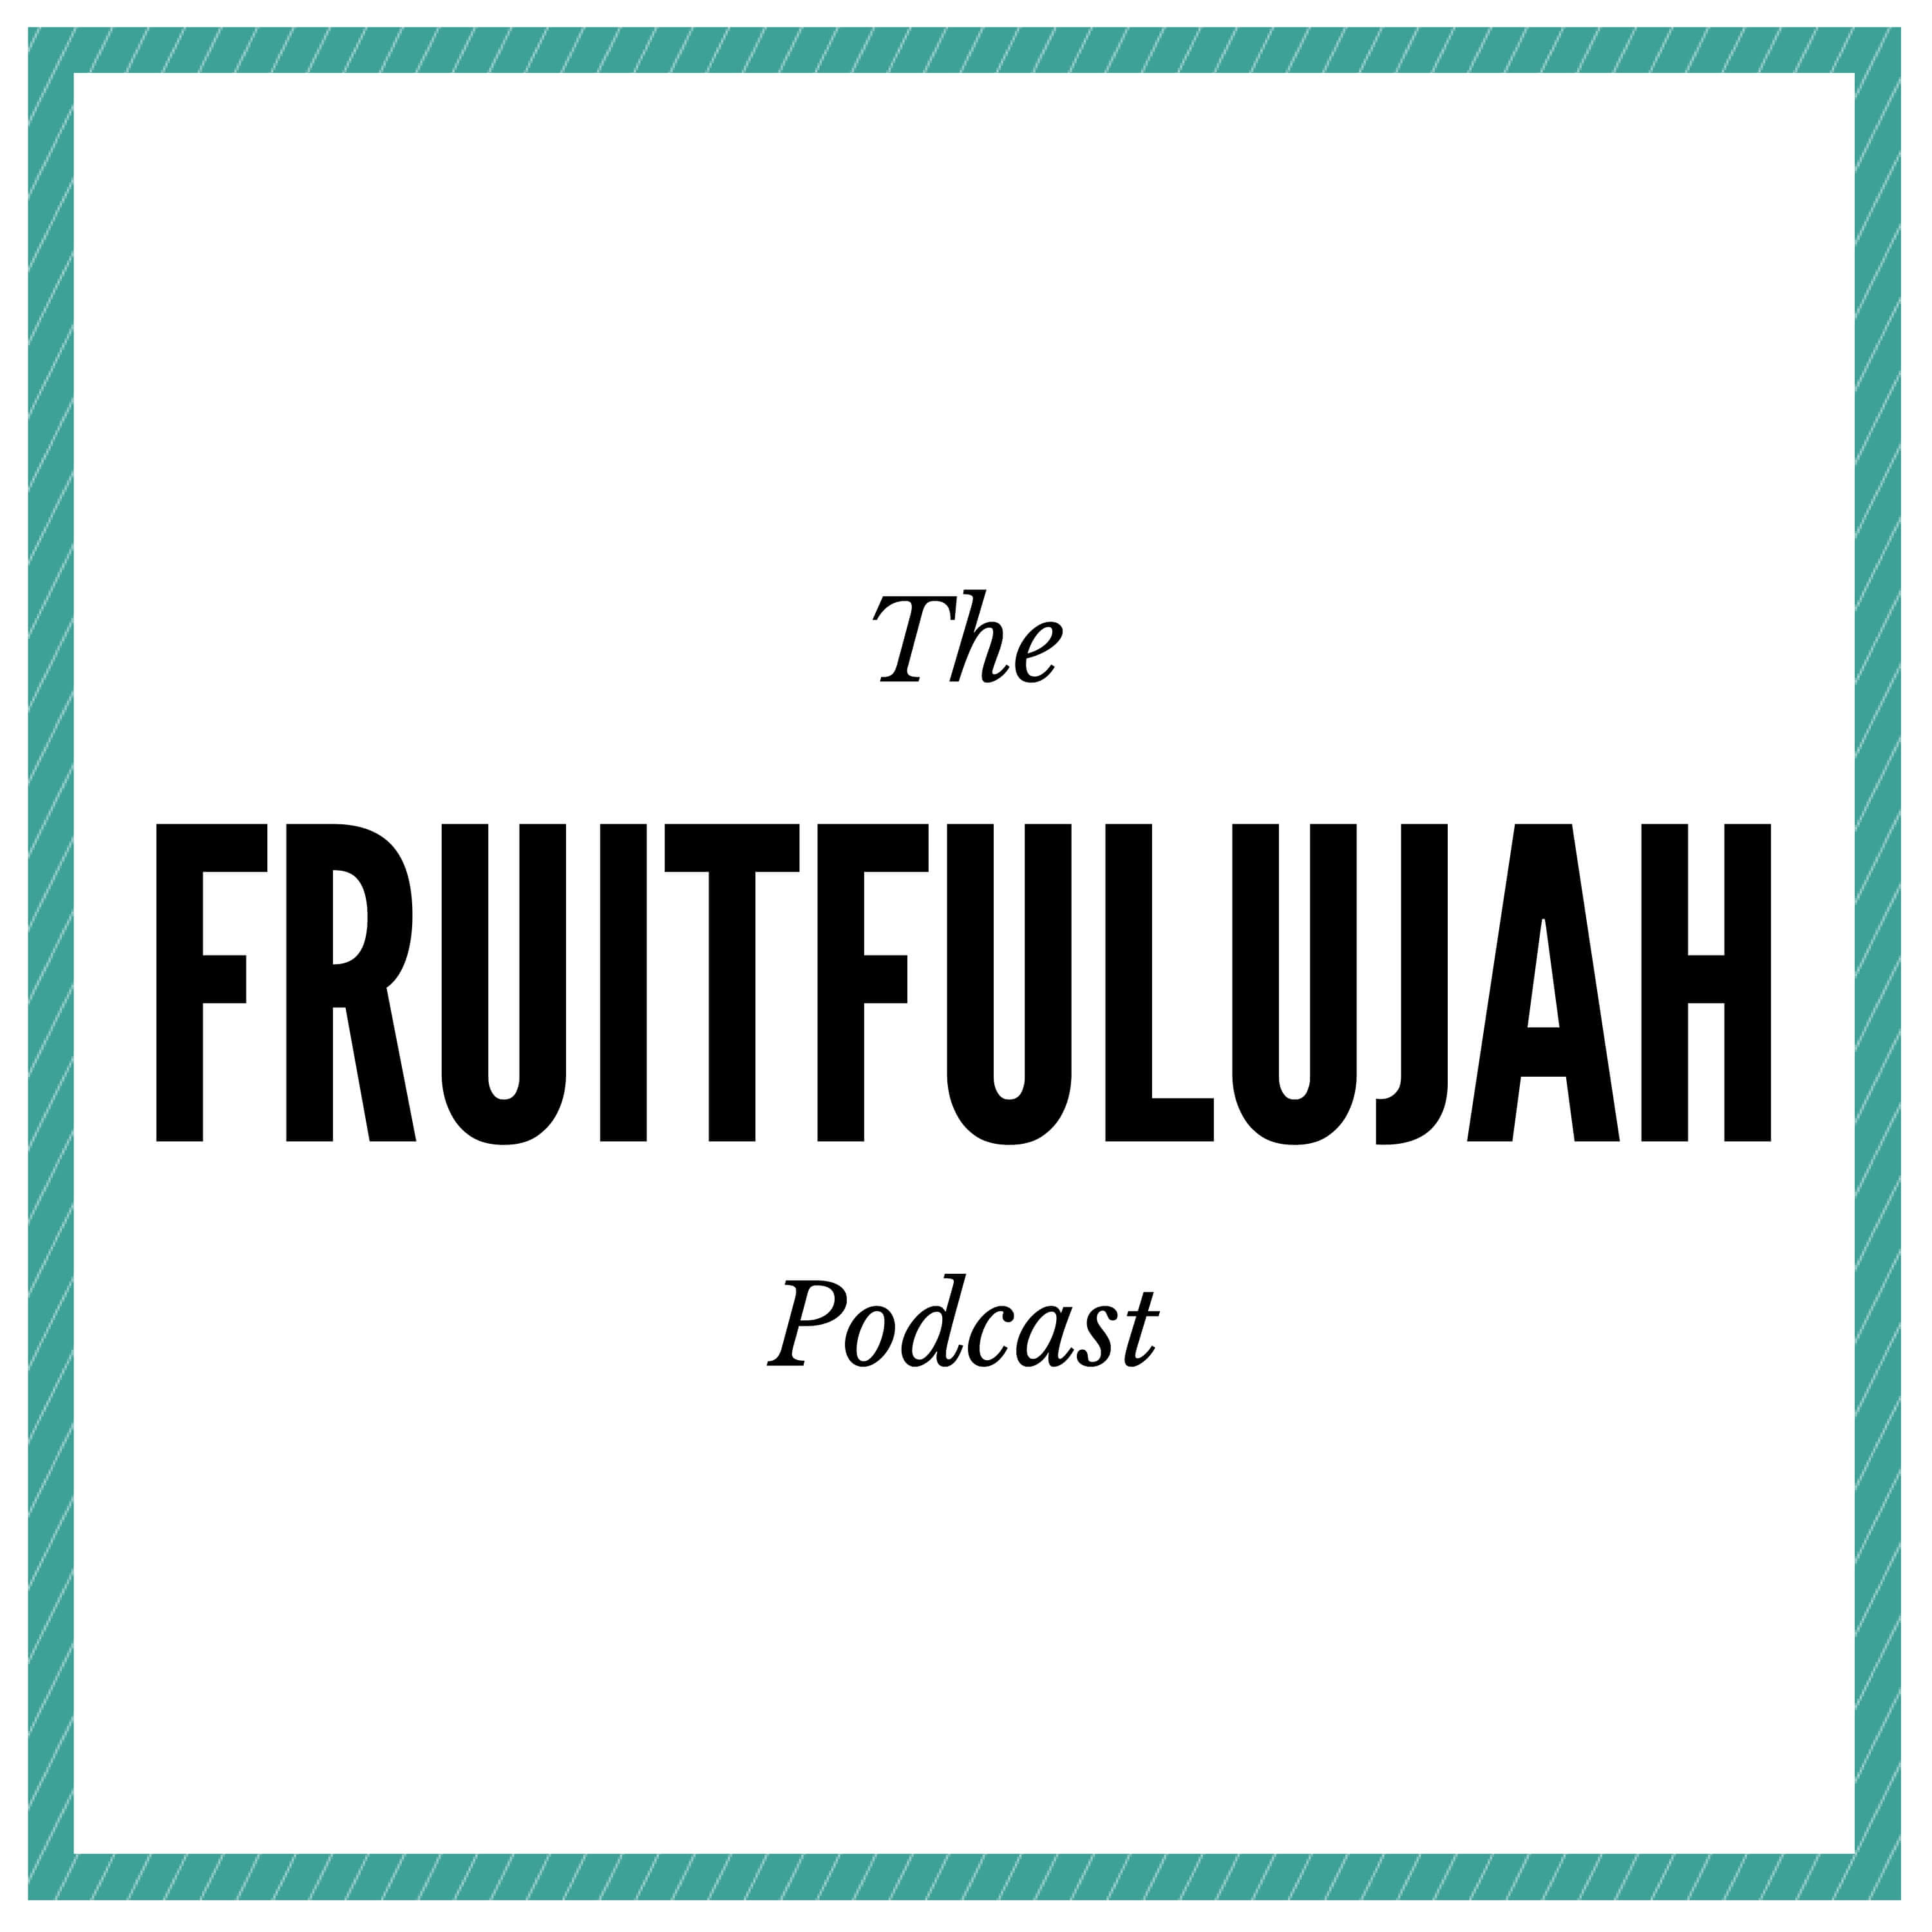 The Fruitfulujah Podcast